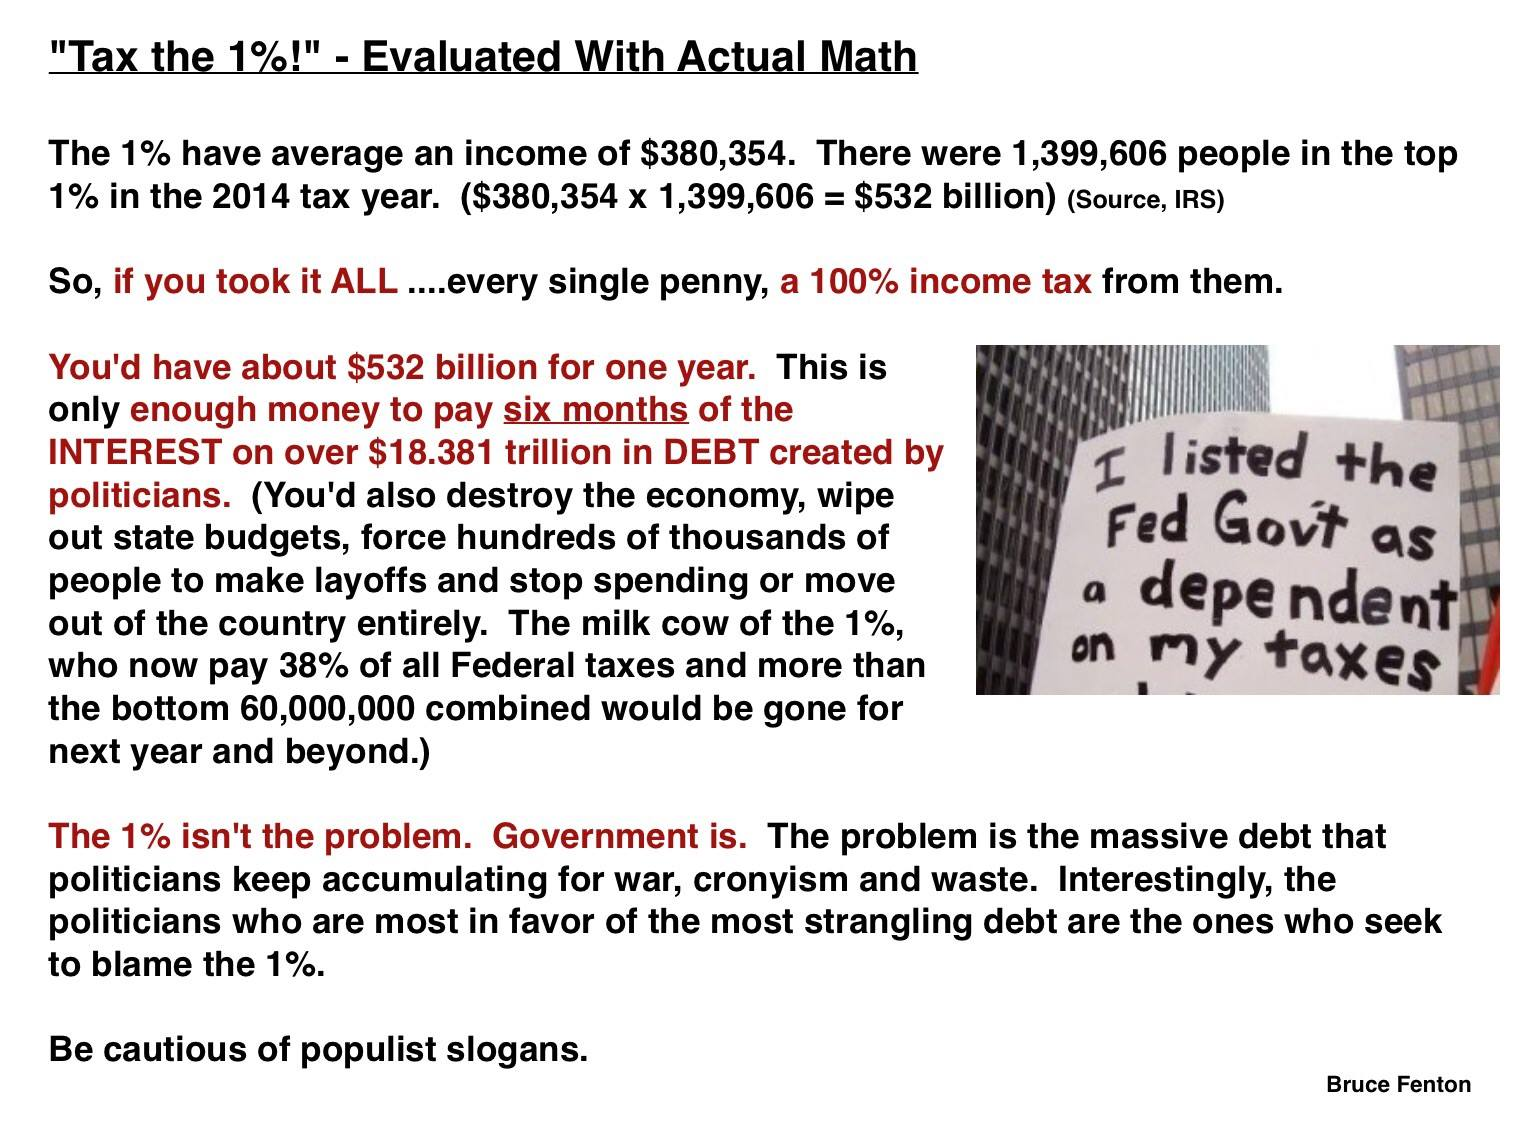 tax-the-1-evaluated-with-actual-math